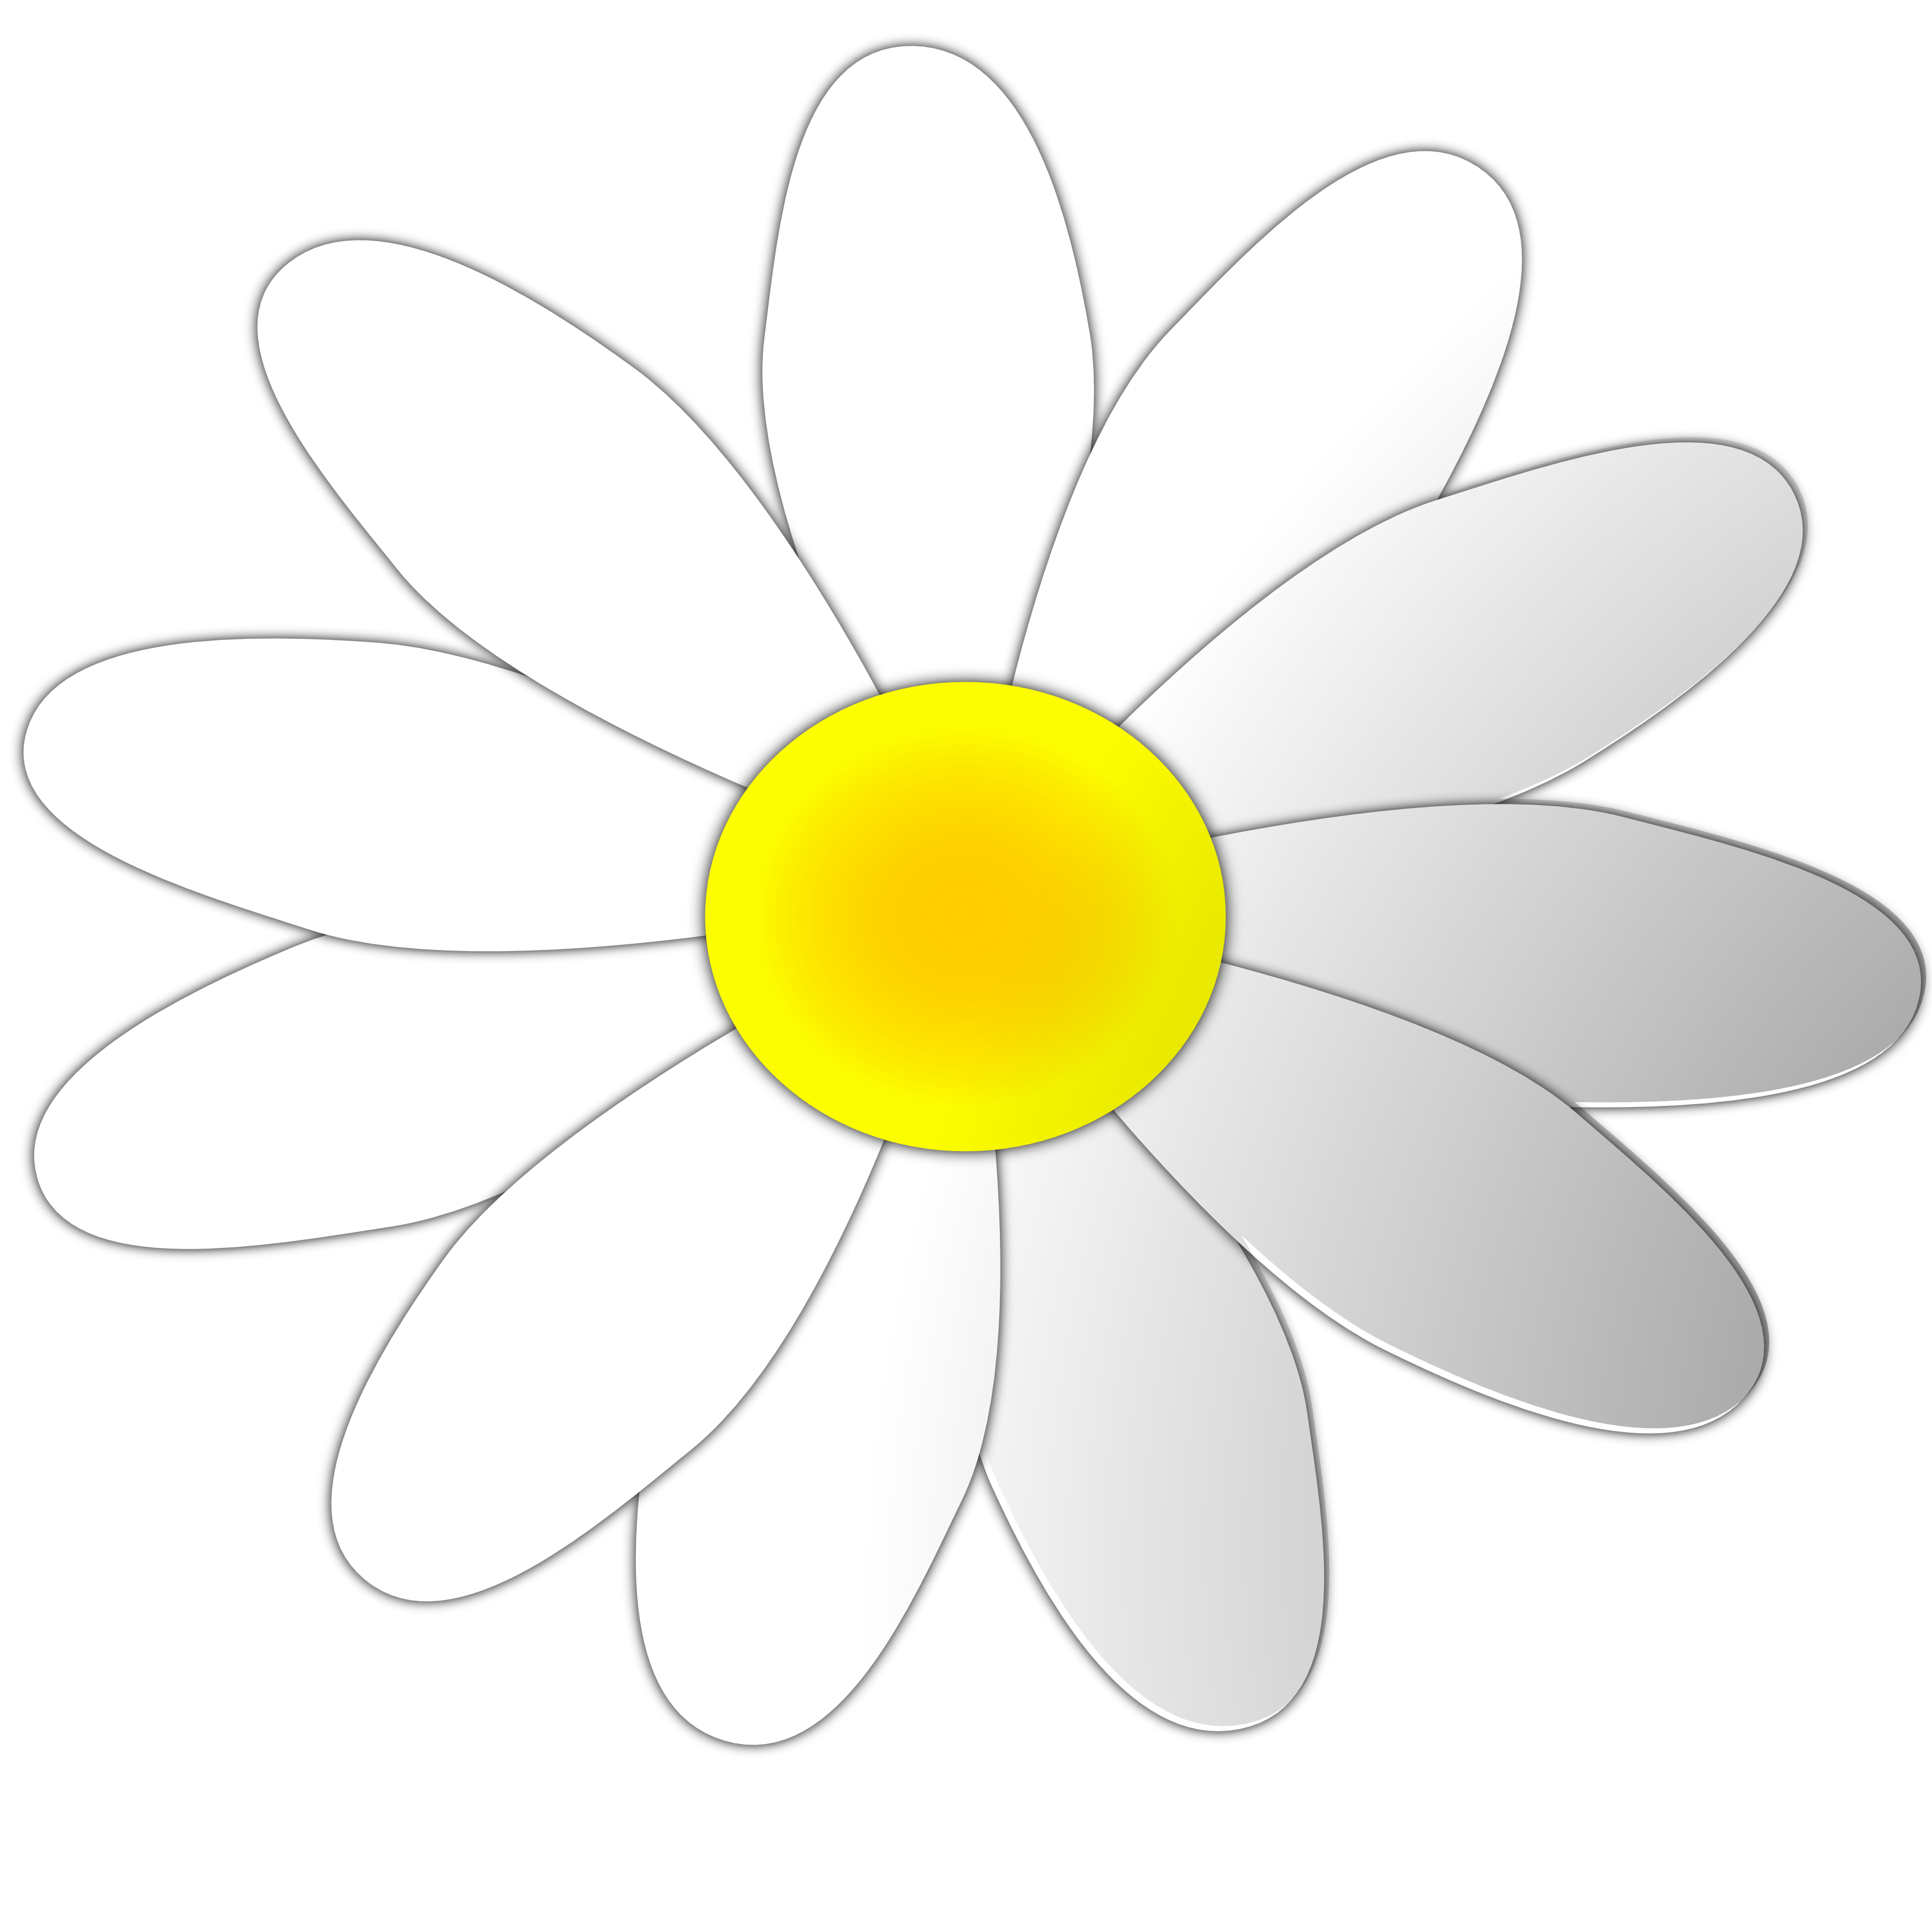 White Flower clipart #6, Download drawings